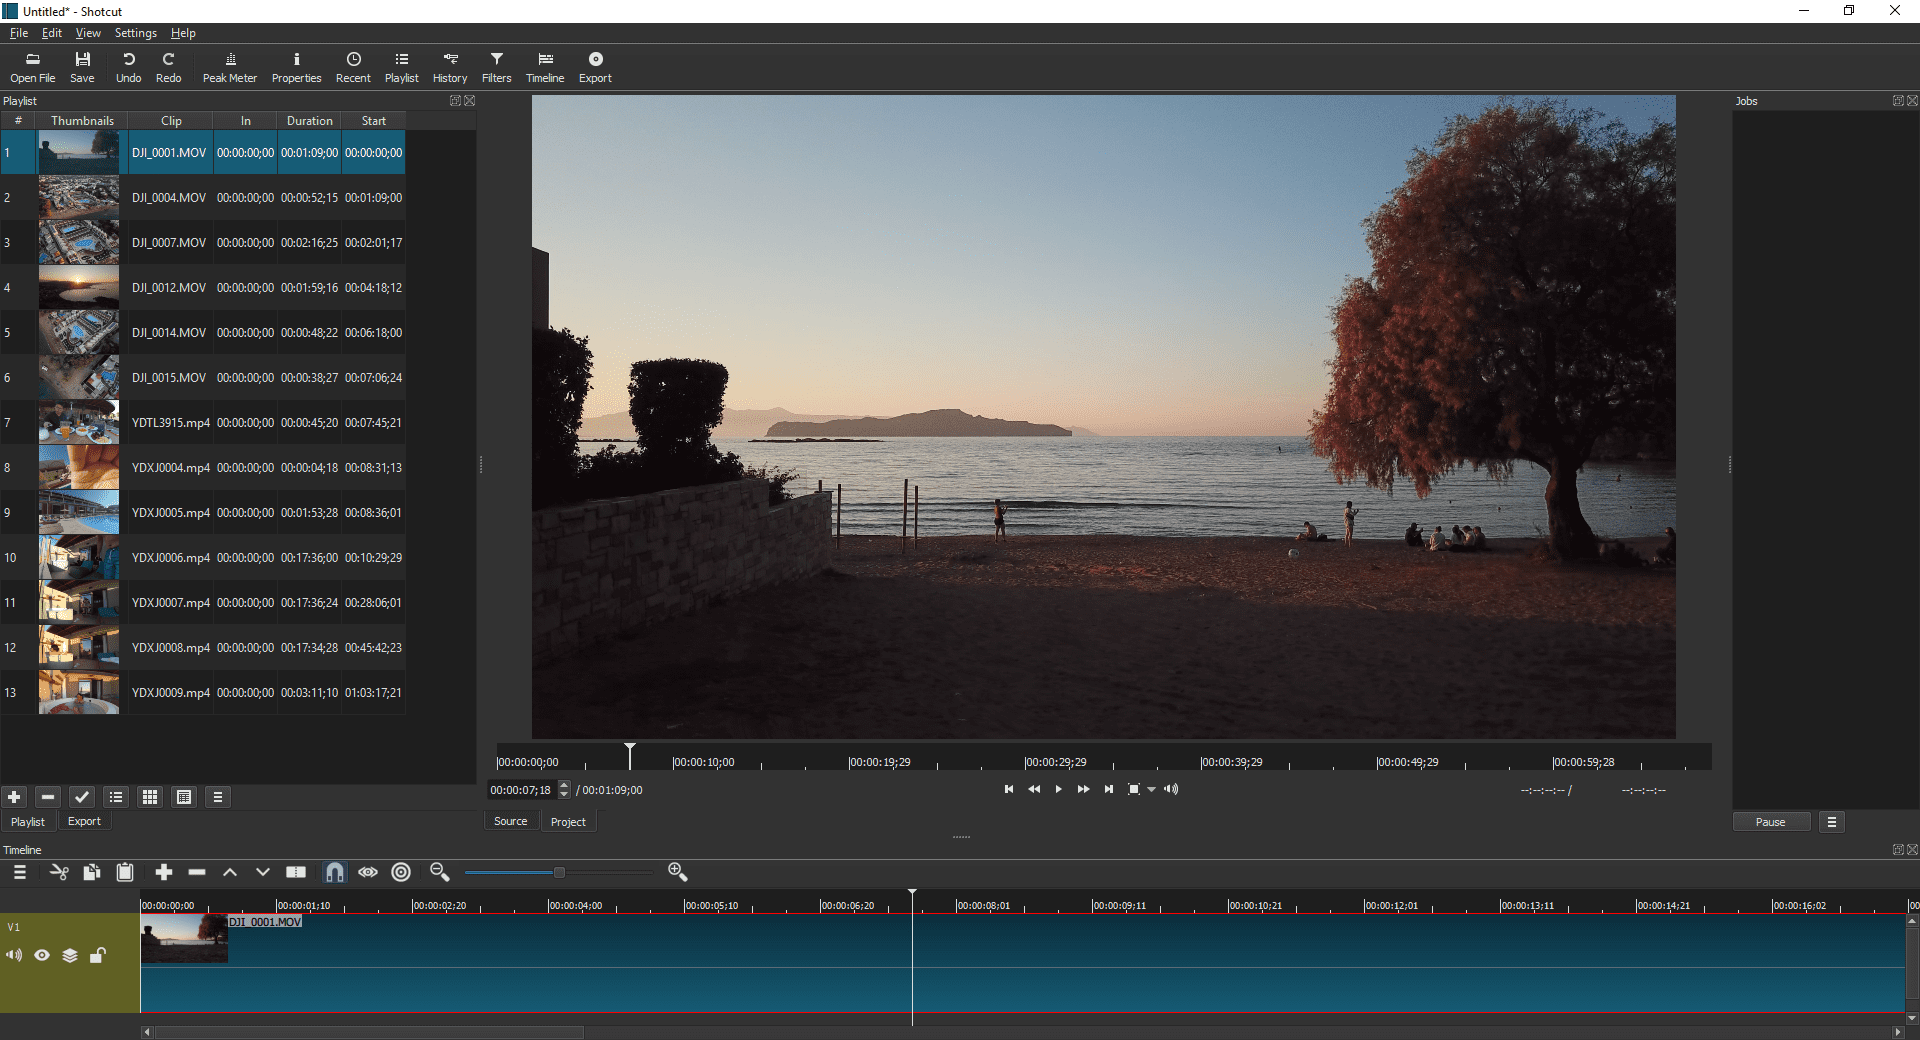 2017 11 19 2243 - How To Get Movie Maker On Windows 10 2017